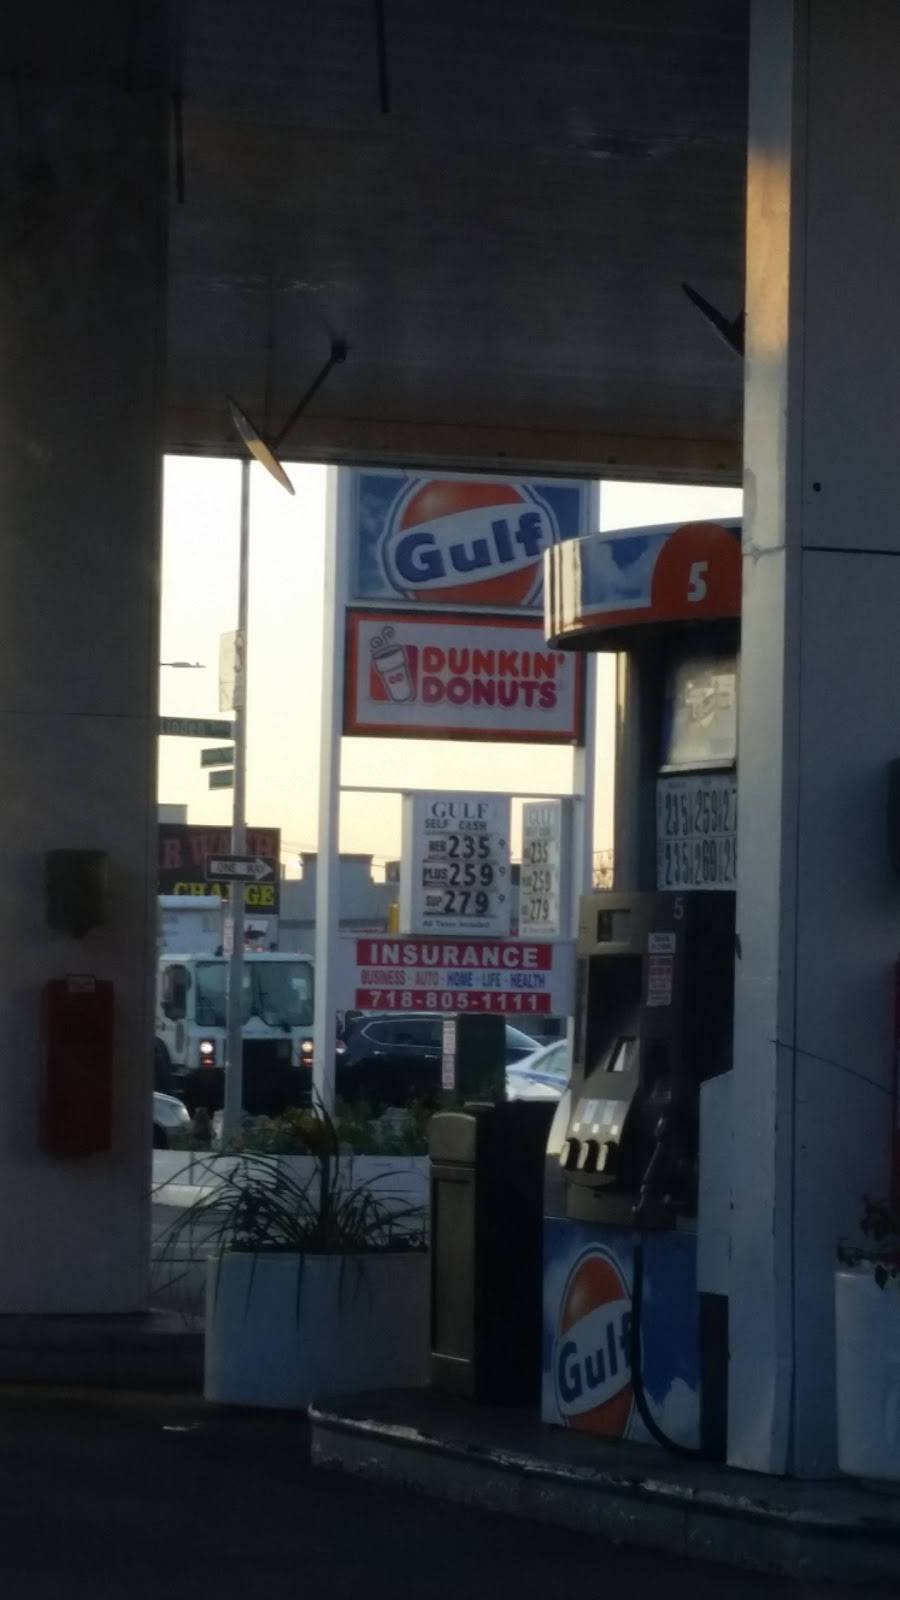 Dunkin Donuts | cafe | Gulf Gas Station, 1939 Linden Blvd, Brooklyn, NY 11207, USA | 7182725801 OR +1 718-272-5801